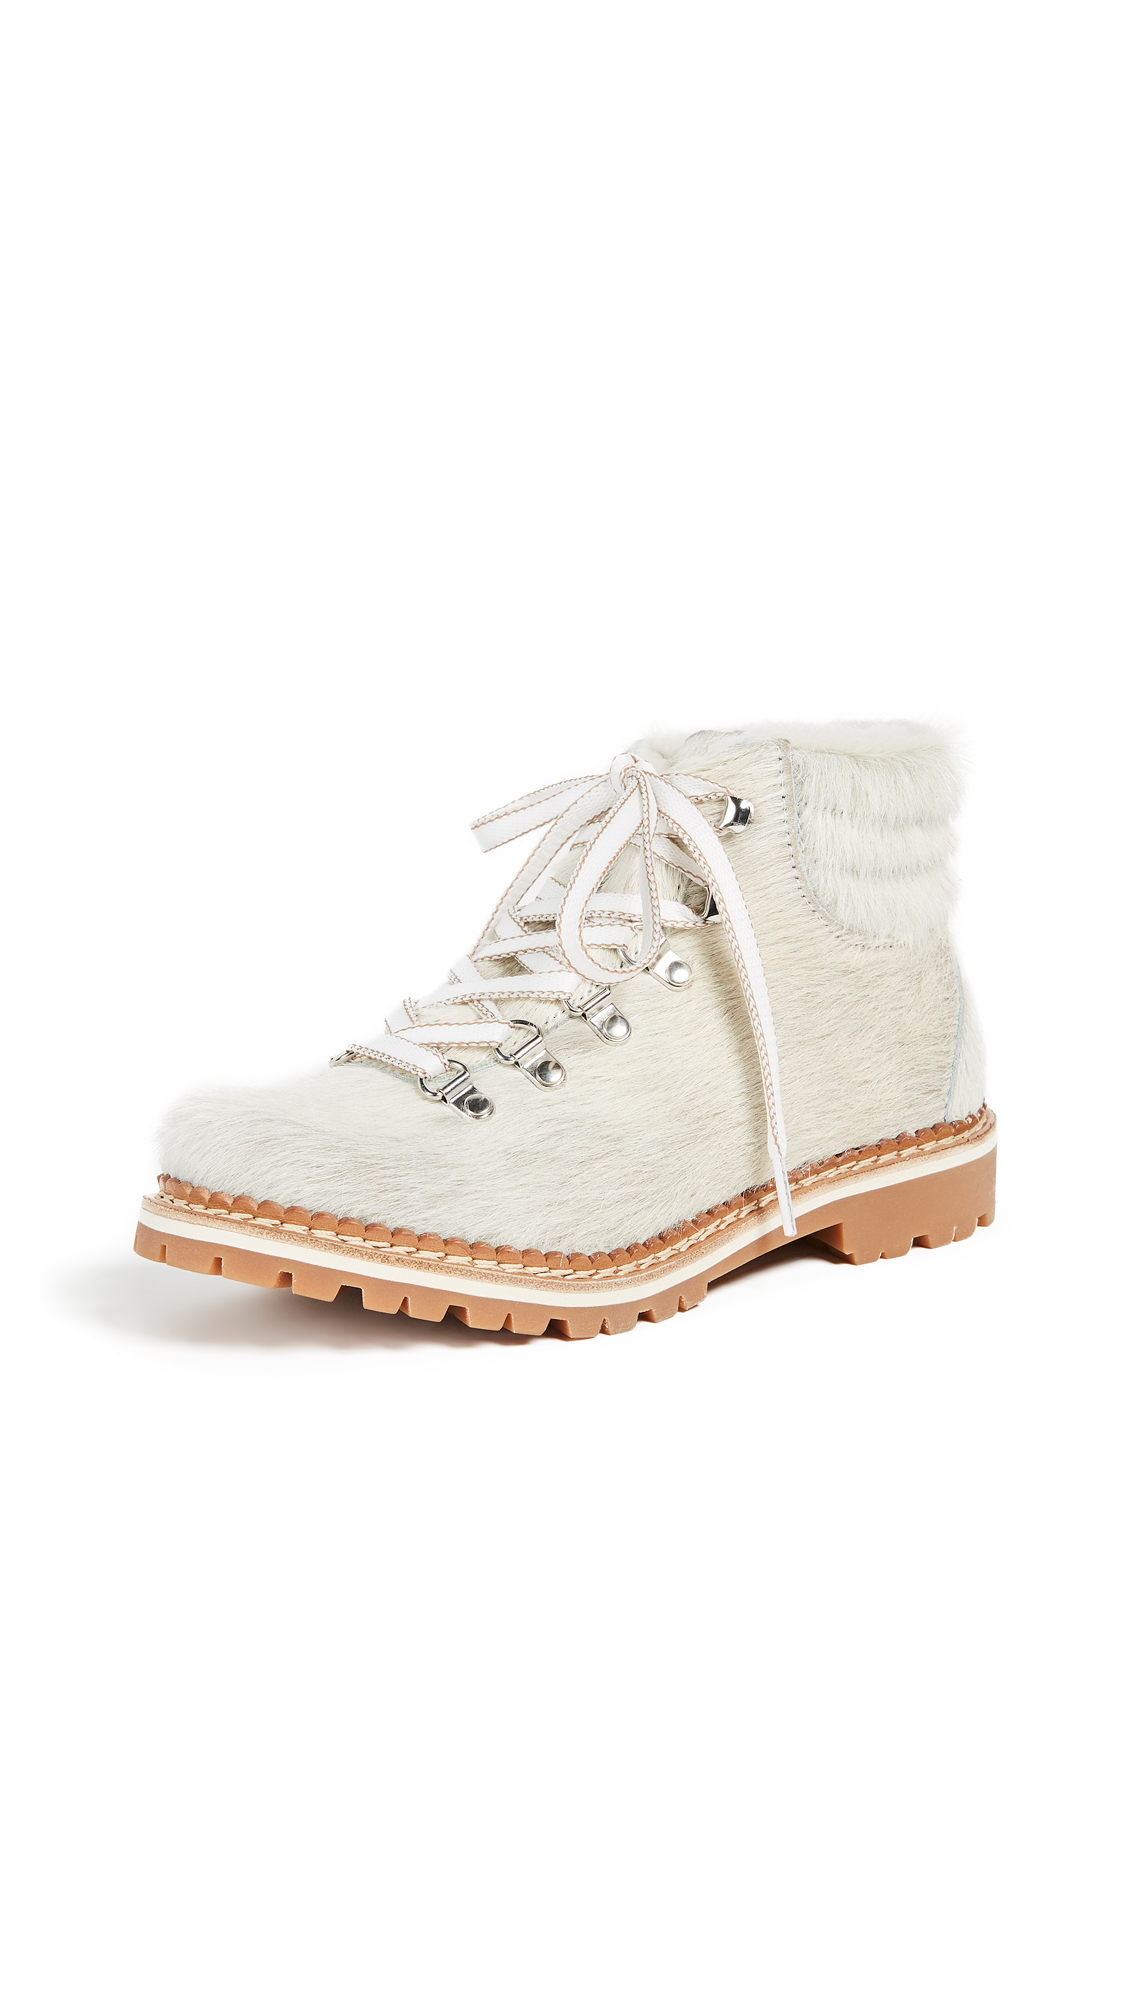 Montelliana Margherita Hiker Boots - White